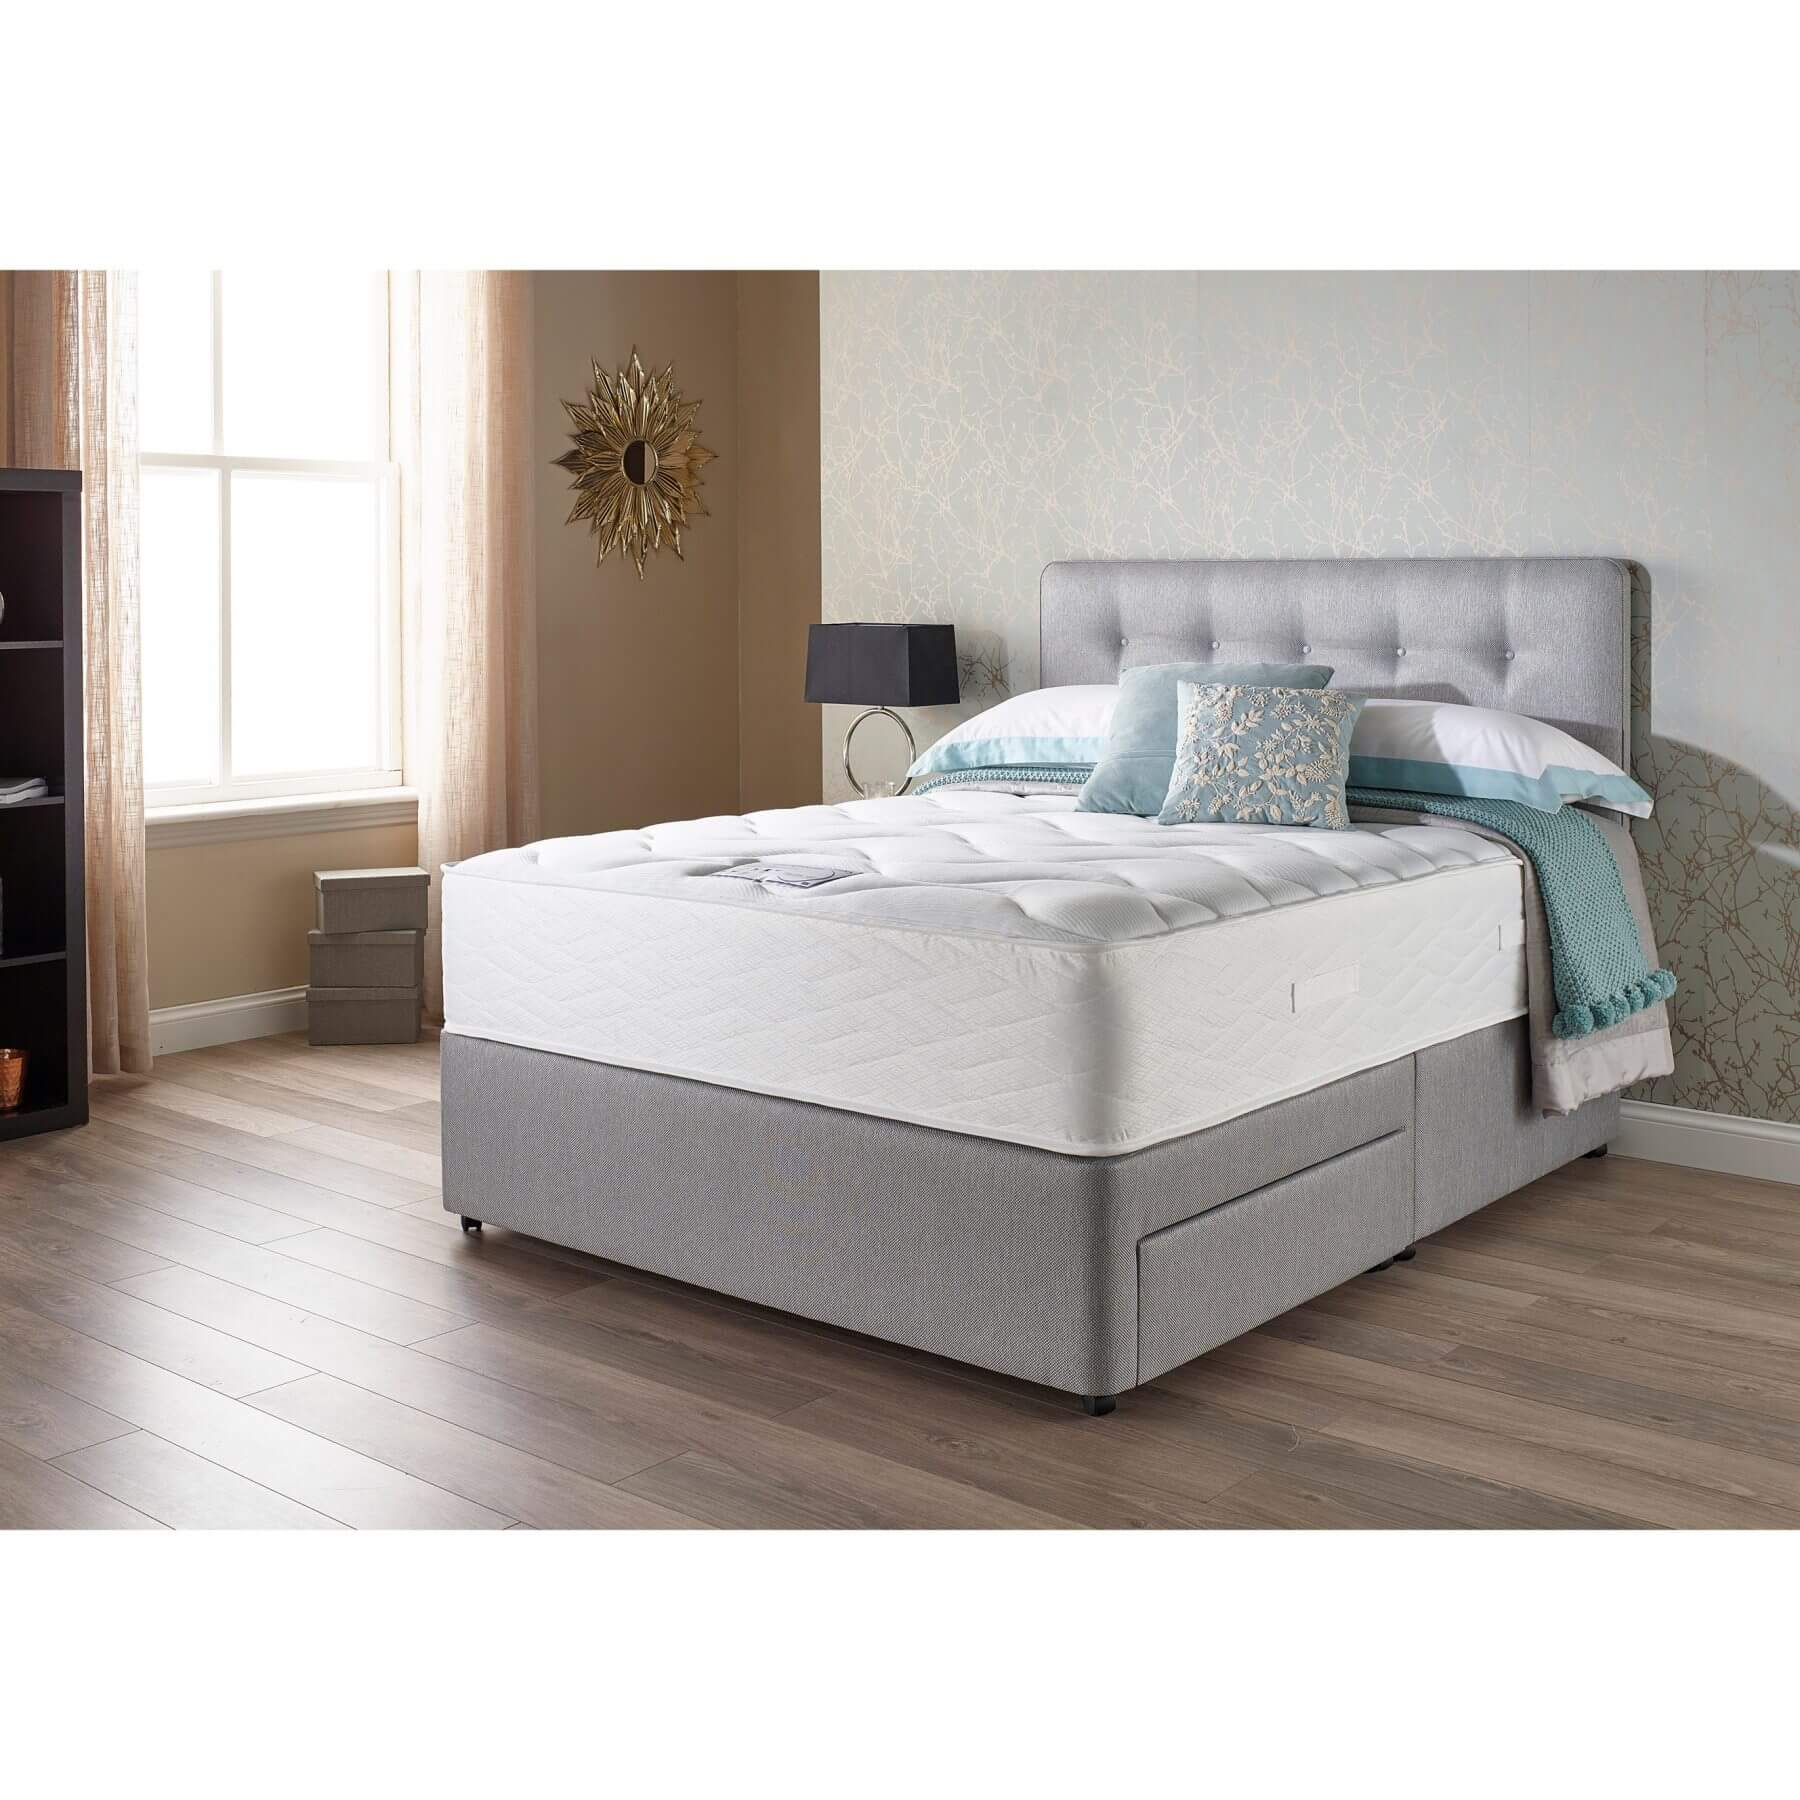 Myers Extra Memory Comfort 1400 Mattress & Base Divan Set - choice of bases and fabric colours (Base Height: Standard Height Divan, Fabric Colour: